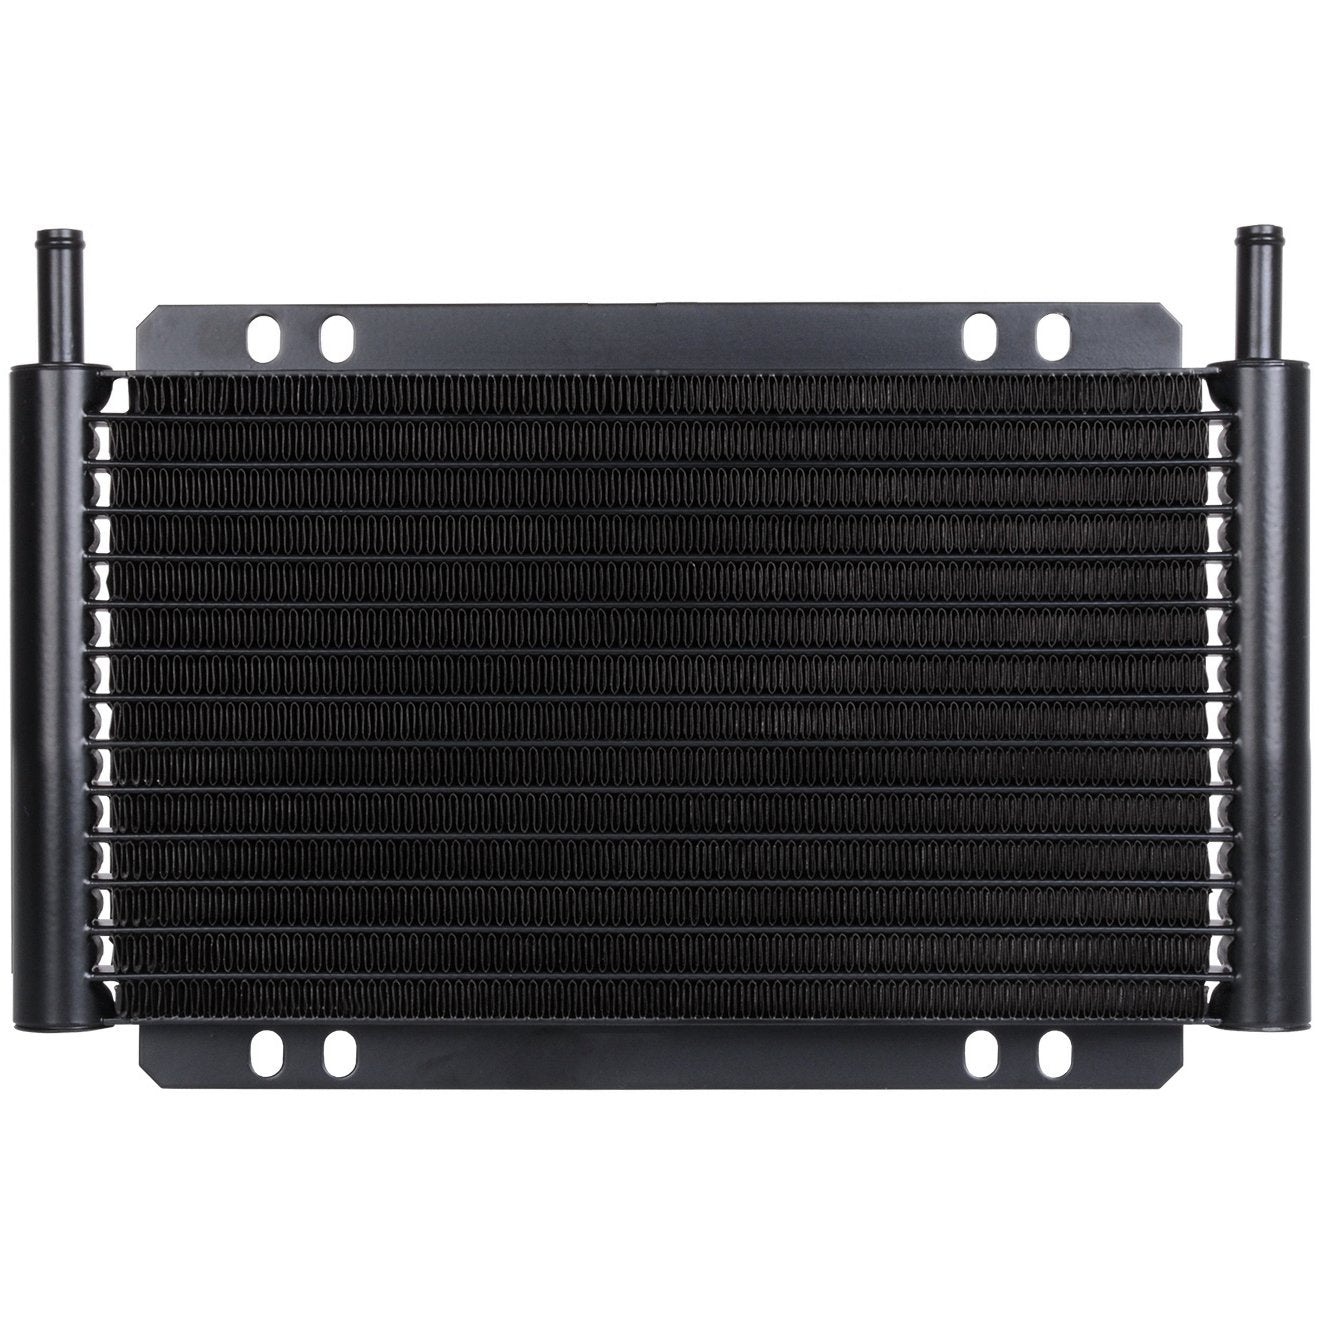 "17 Row Engine Transmission Oil Cooler 6"" Inch Electric Cooling Fan Ground Thermostat Temp Switch Kit-Oil Cooler-American Volt-6AN-1/8"" NPT-140'F On - 125'F Off-American Volt"